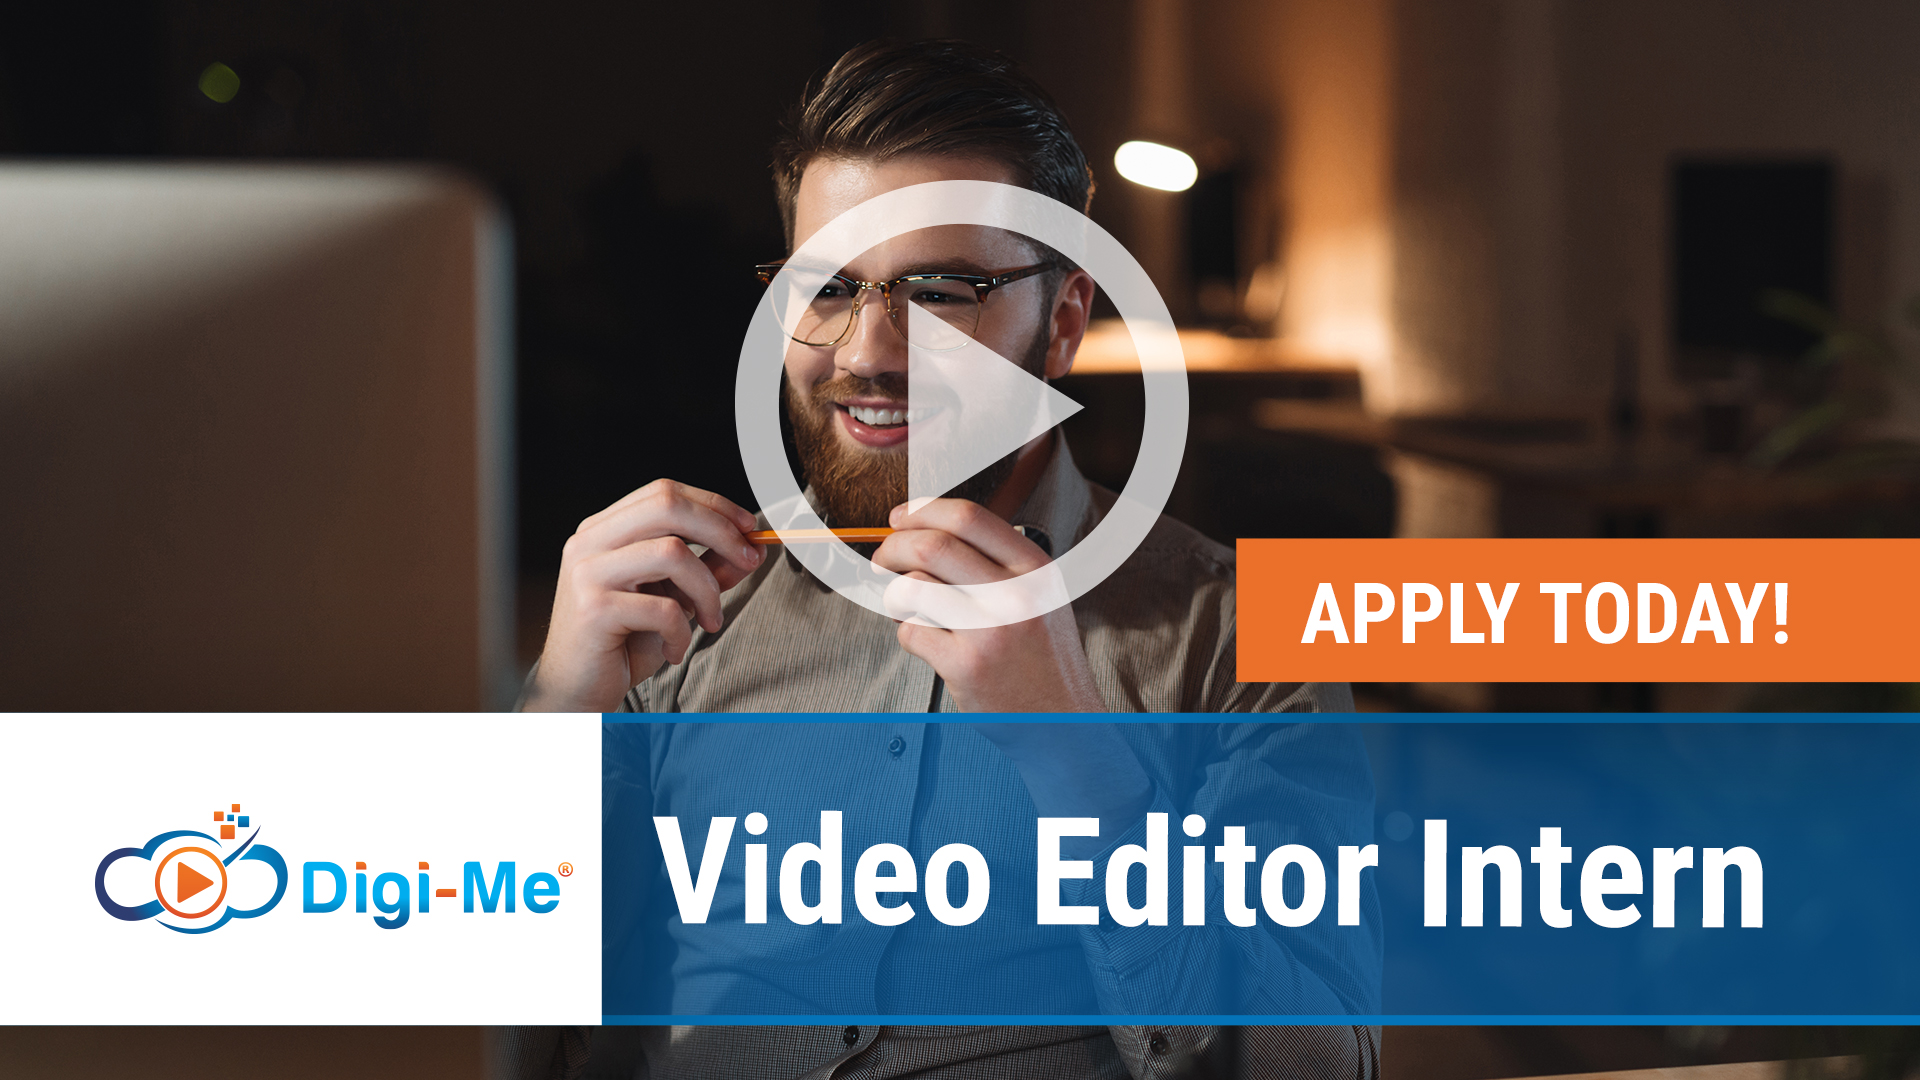 Watch our careers video for available job opening Video Editor Intern in Naperville,Illinois or Virtua